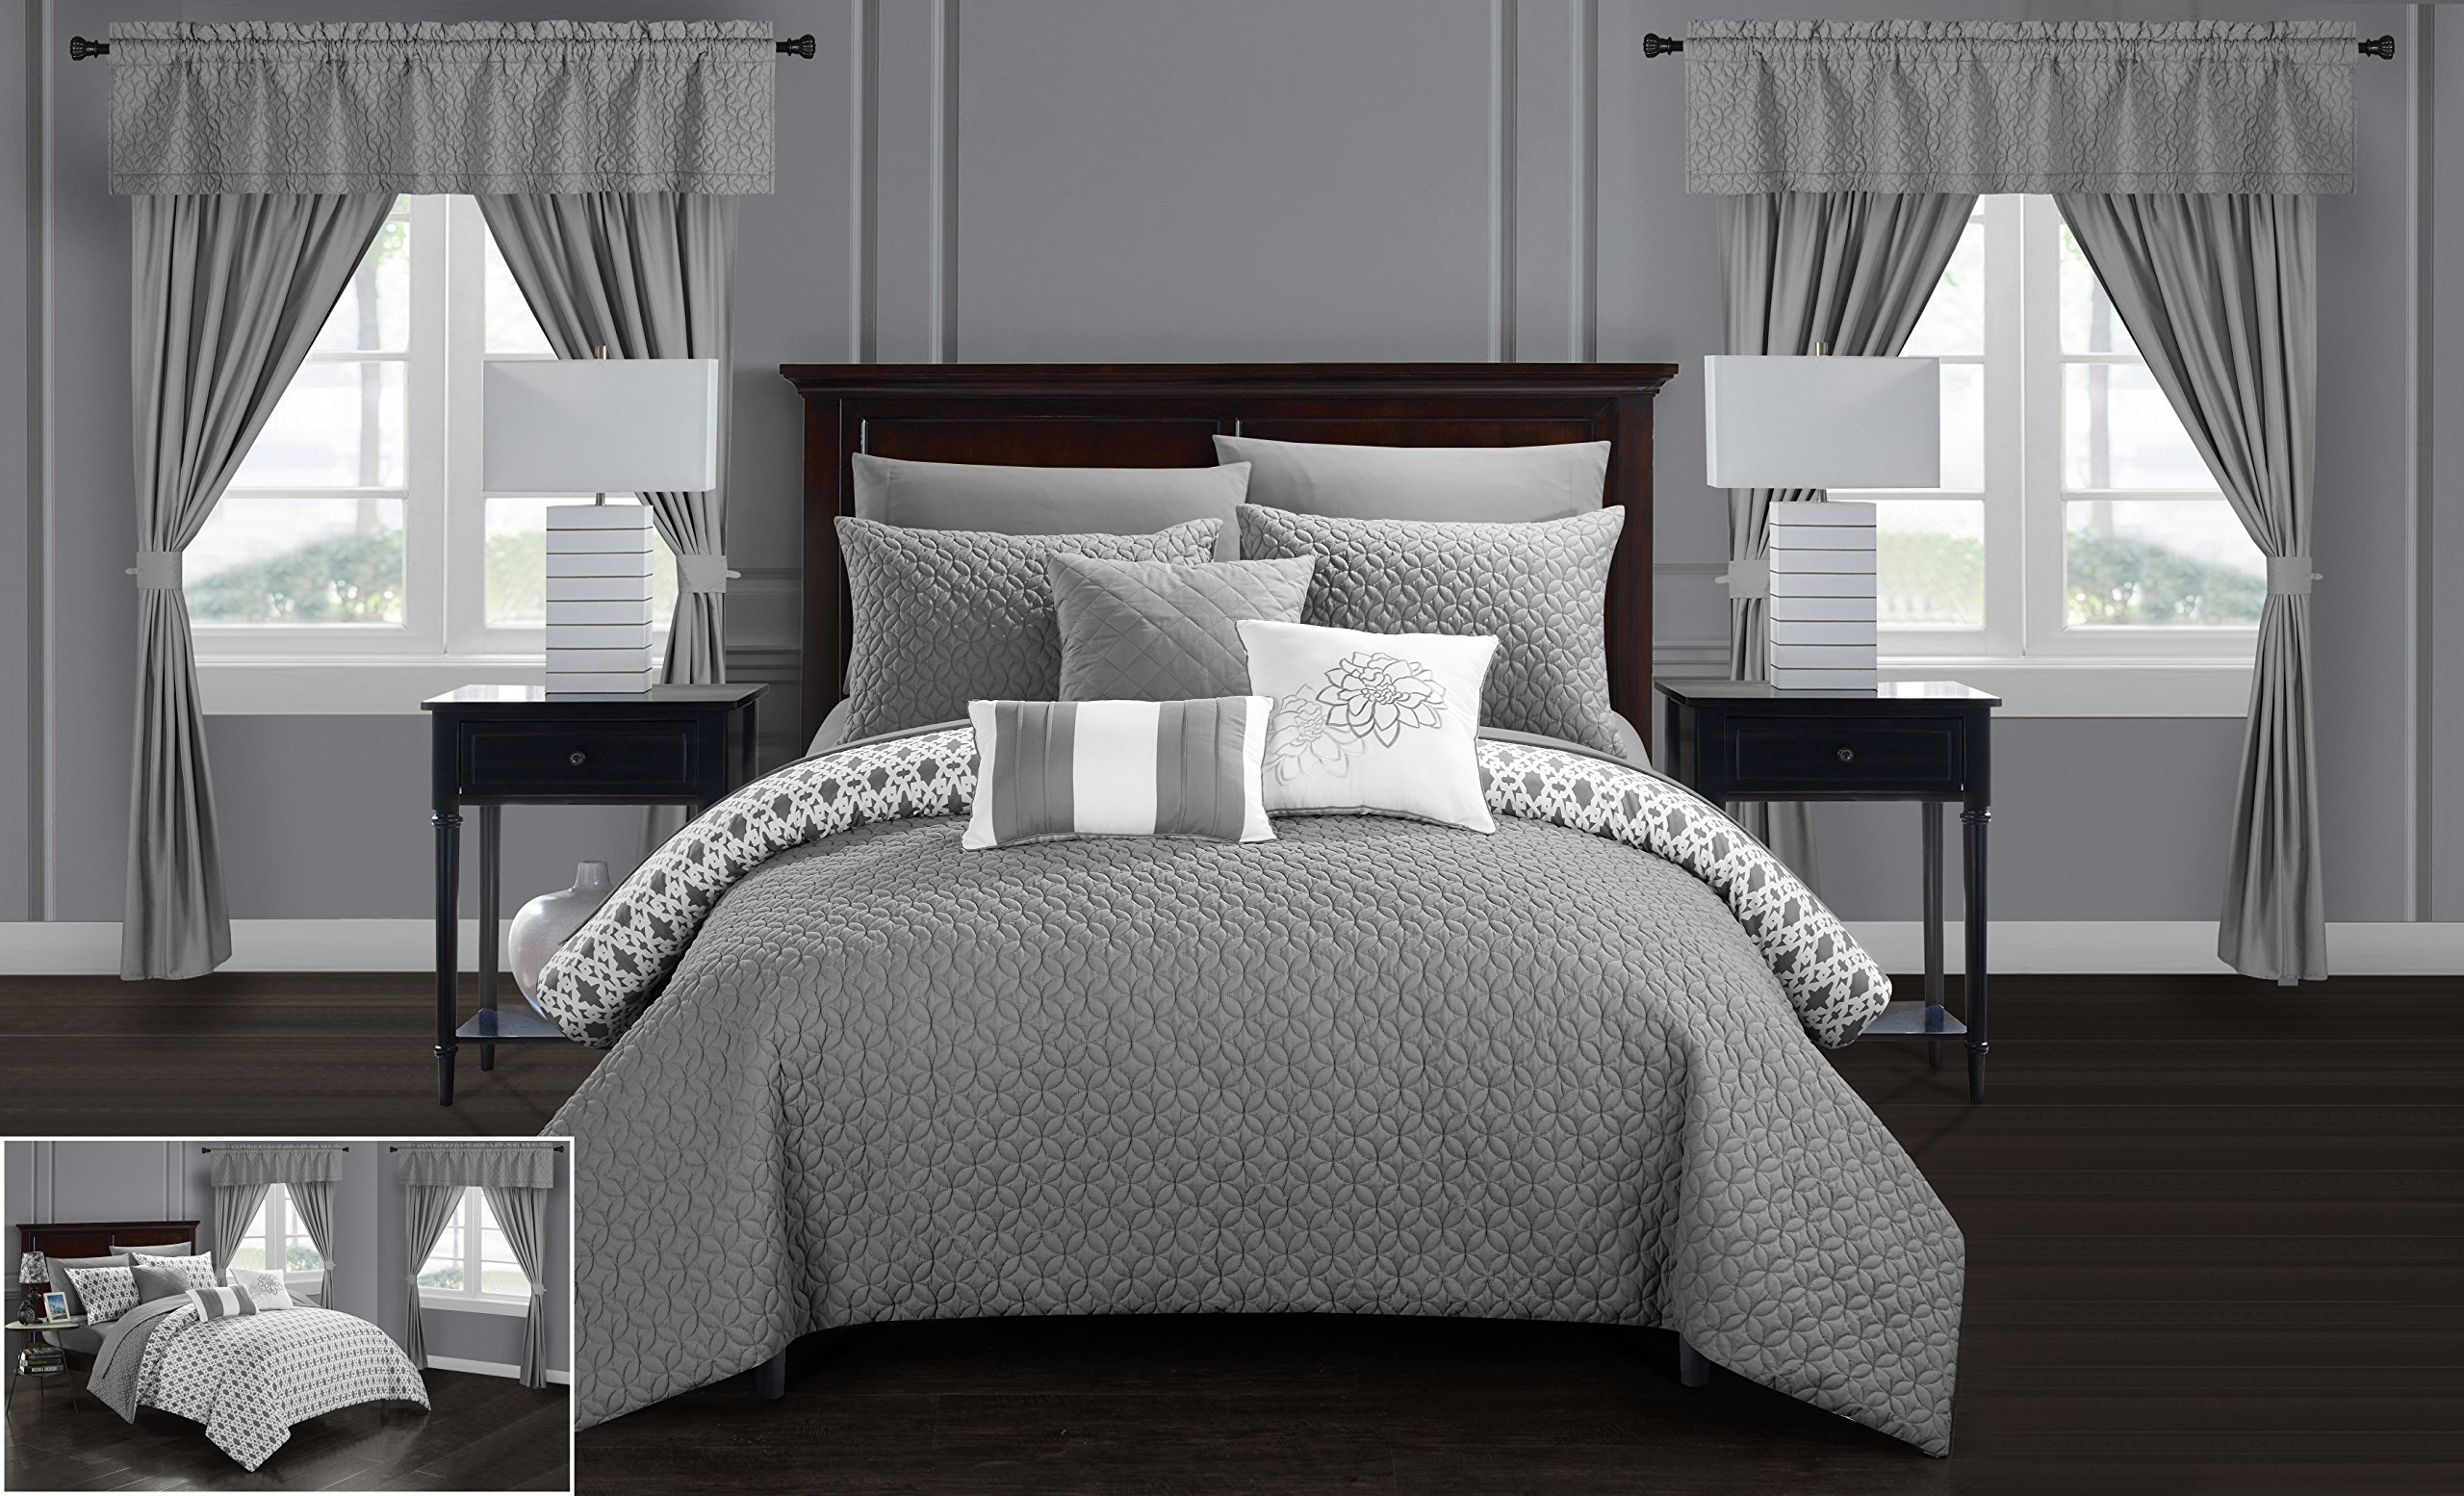 Chic Home Sigal 20 Piece Comforter Set Reversible Geometric Quilted Design Complete Bed in a Bag Bedding – Sheets Decorative Pillows Shams Window Treatments Curtains Included, King Grey